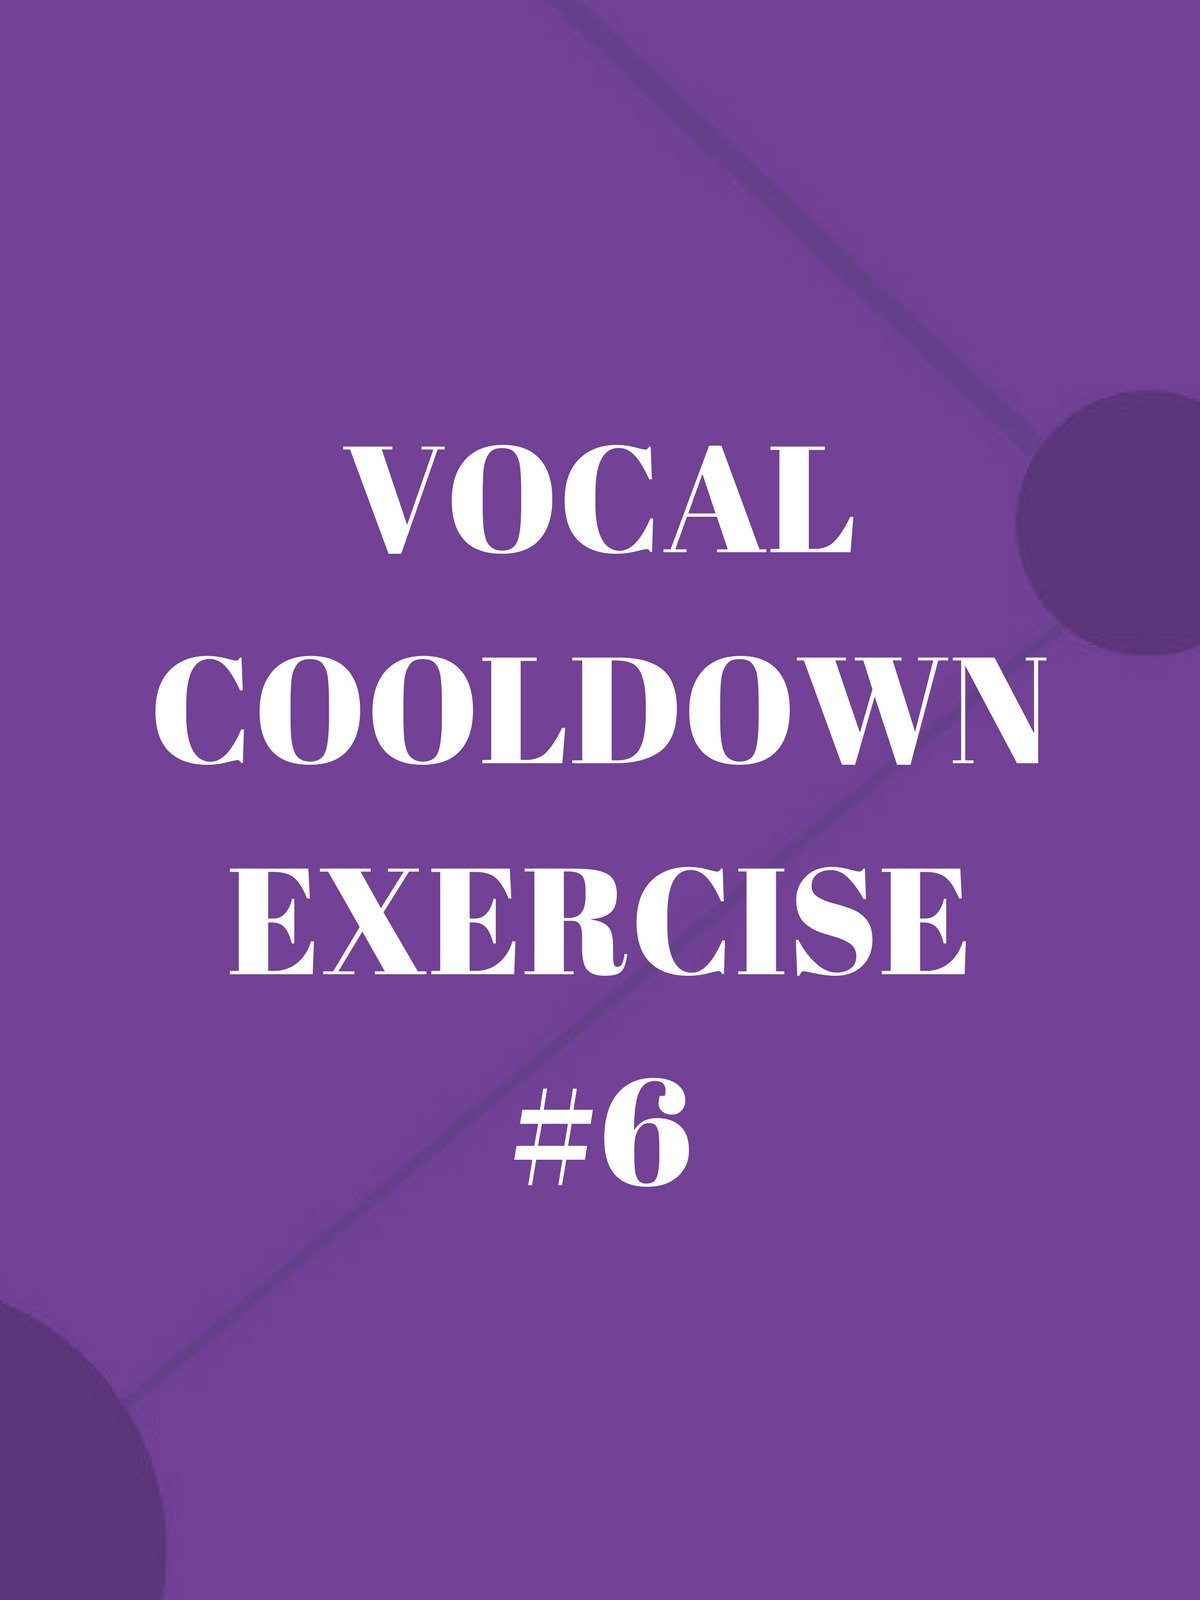 Vocal Cooldown Exercise #6